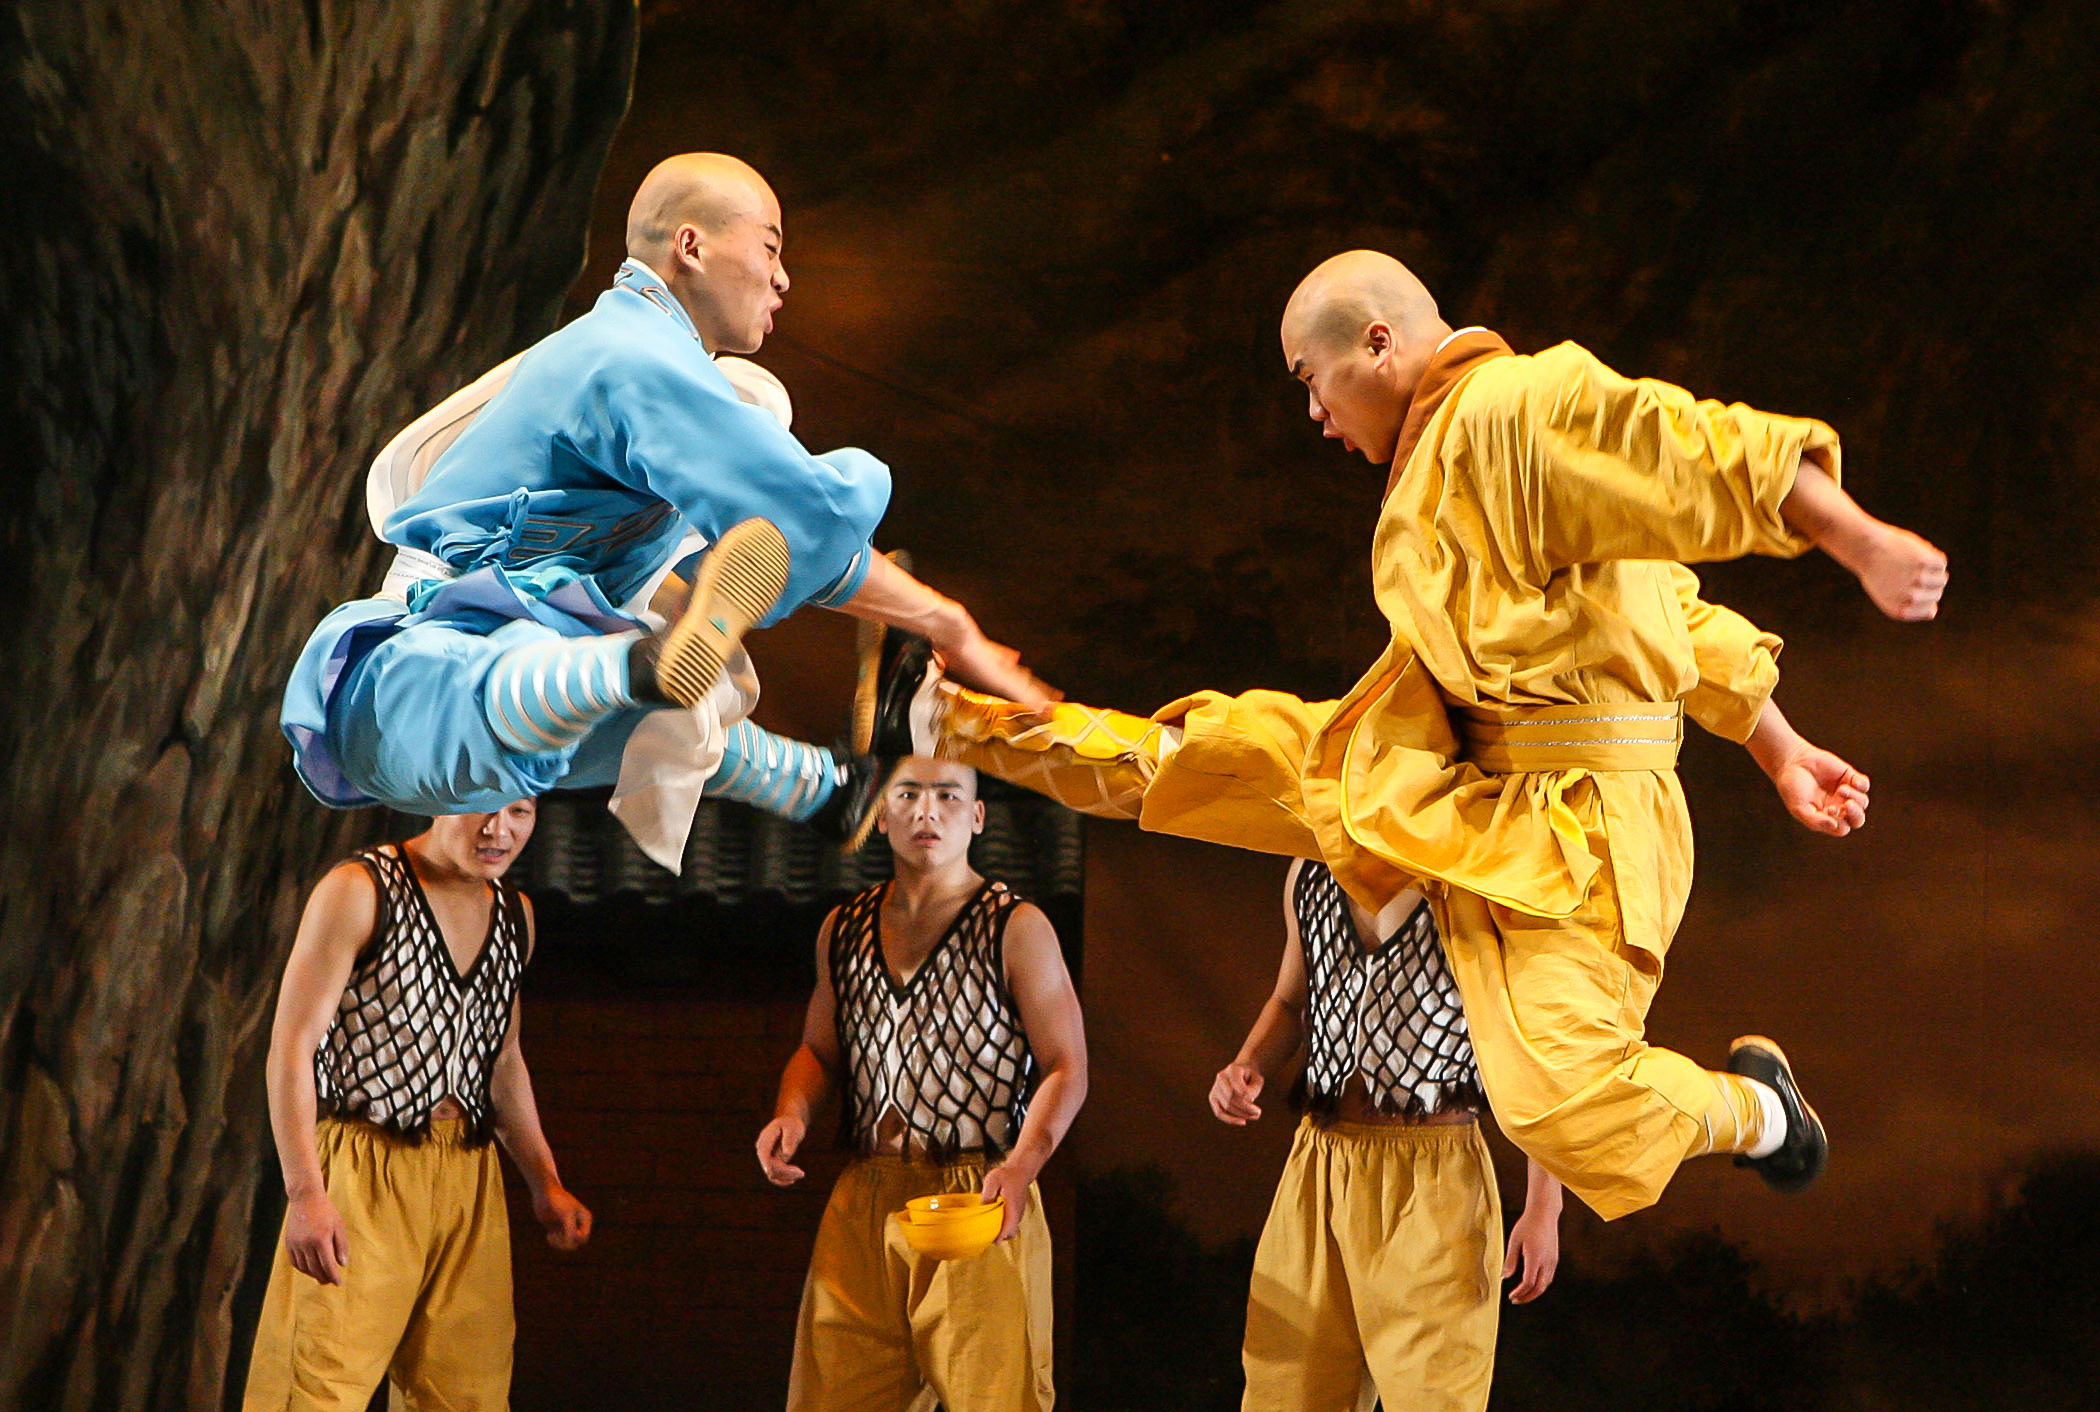 3-XShaolin002_Kicking.jpg-3